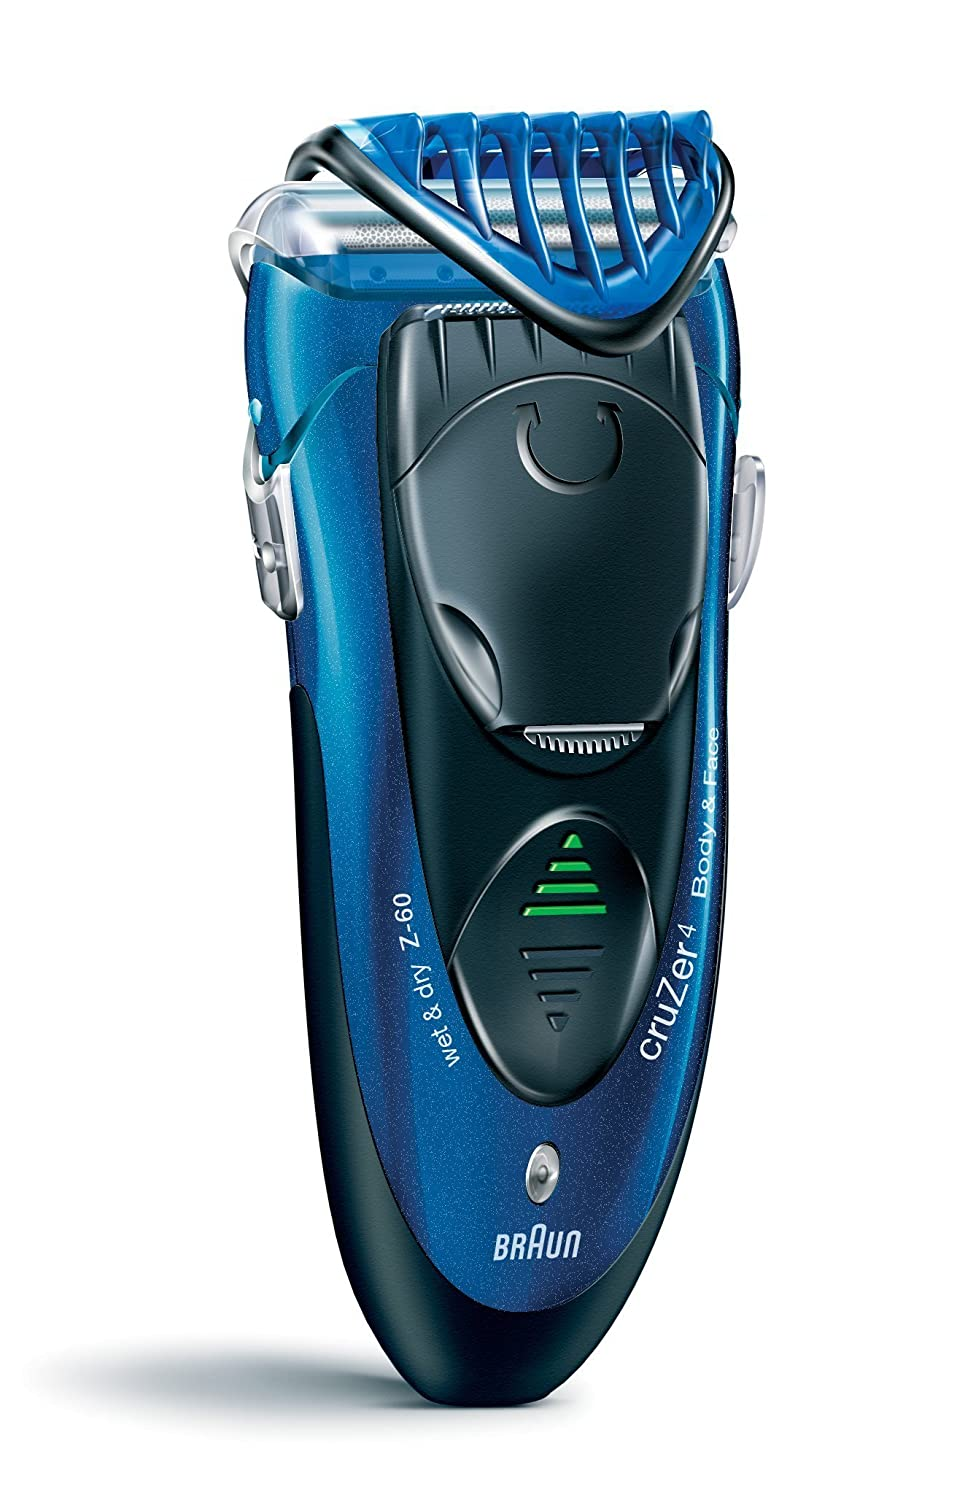 Braun cruZer 4 Shaver and Body Trimmer Procter & Gamble 65730733 razor hair removal